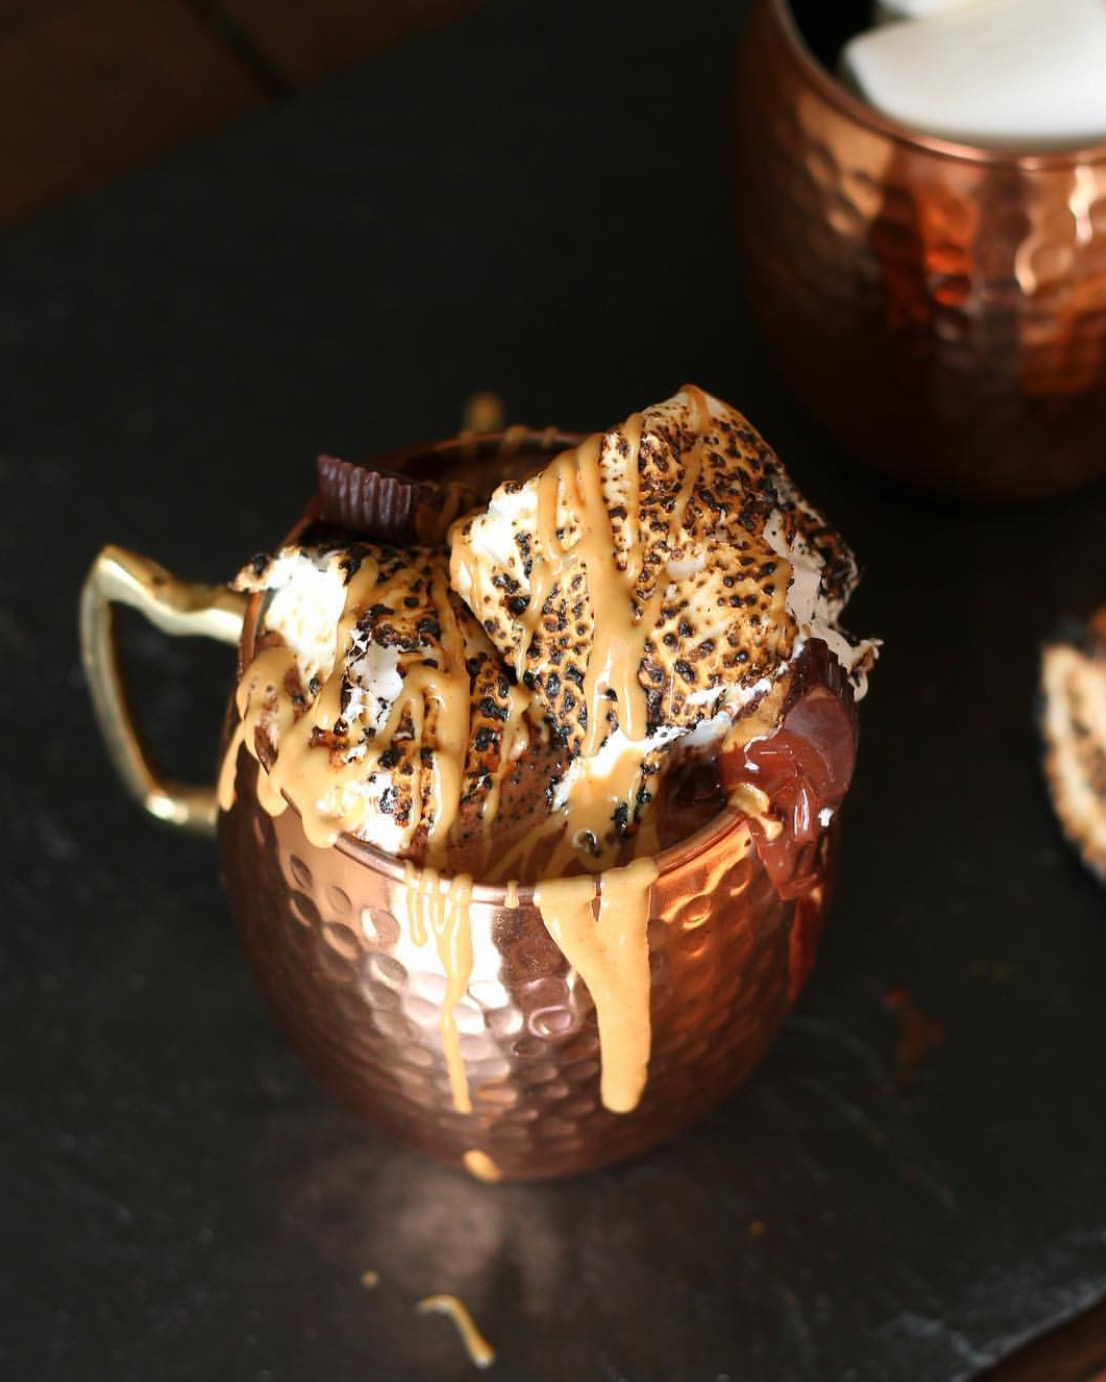 Toasted Marshmallow Peanut Butter Cup Hot Chocolate